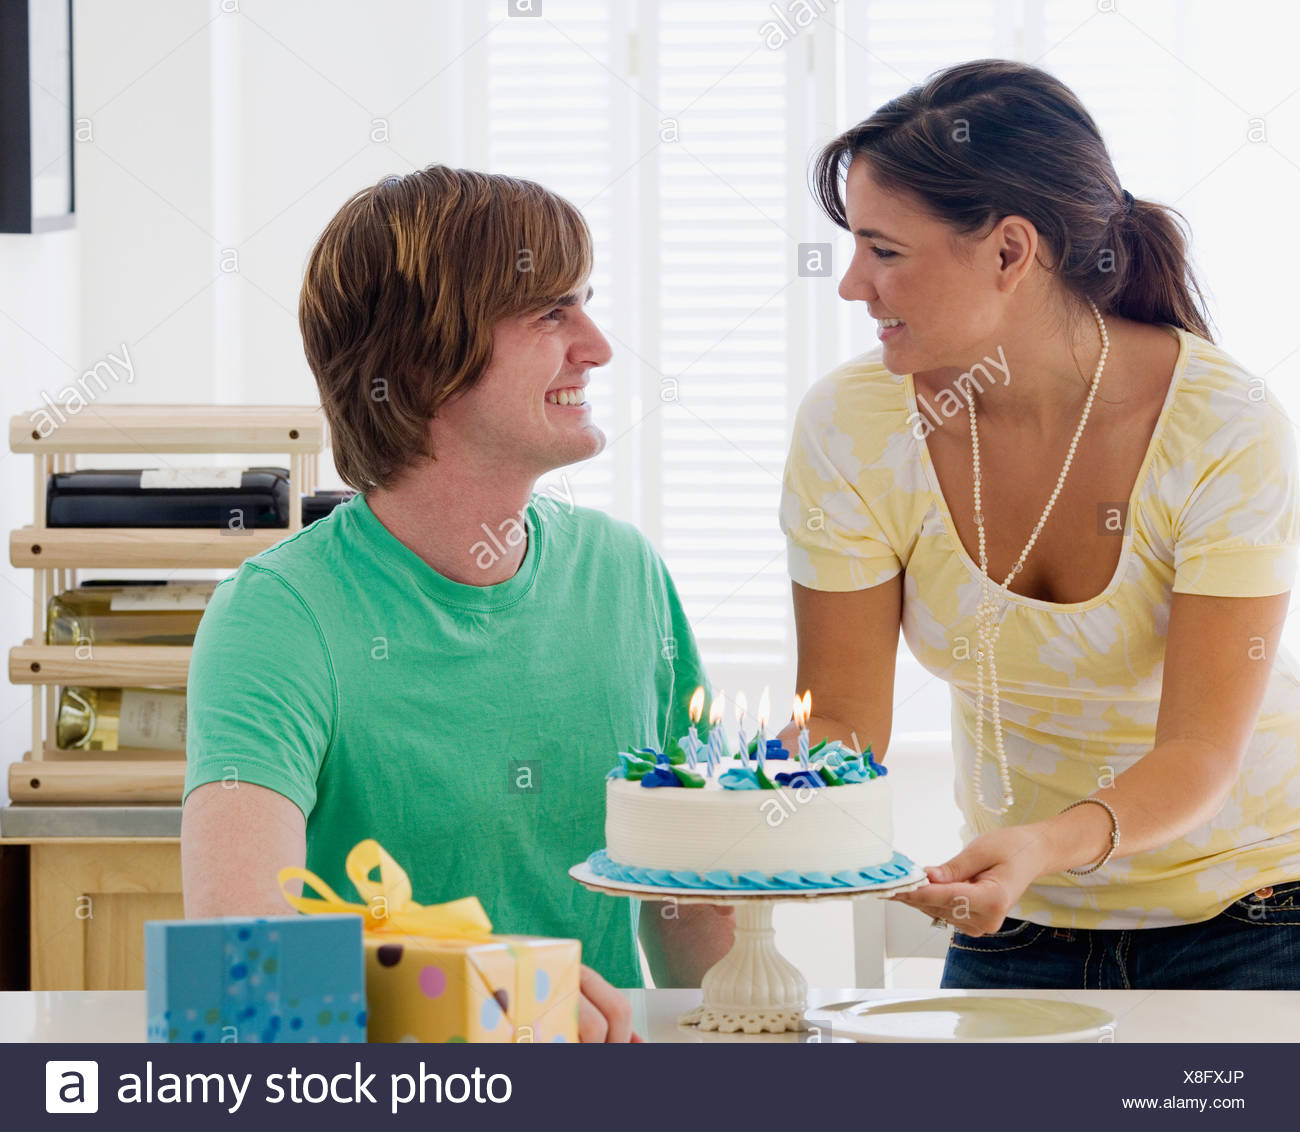 Birthday Cake For Boyfriend Woman Bringing Birthday Cake Boyfriend Stockfotos Woman Bringing